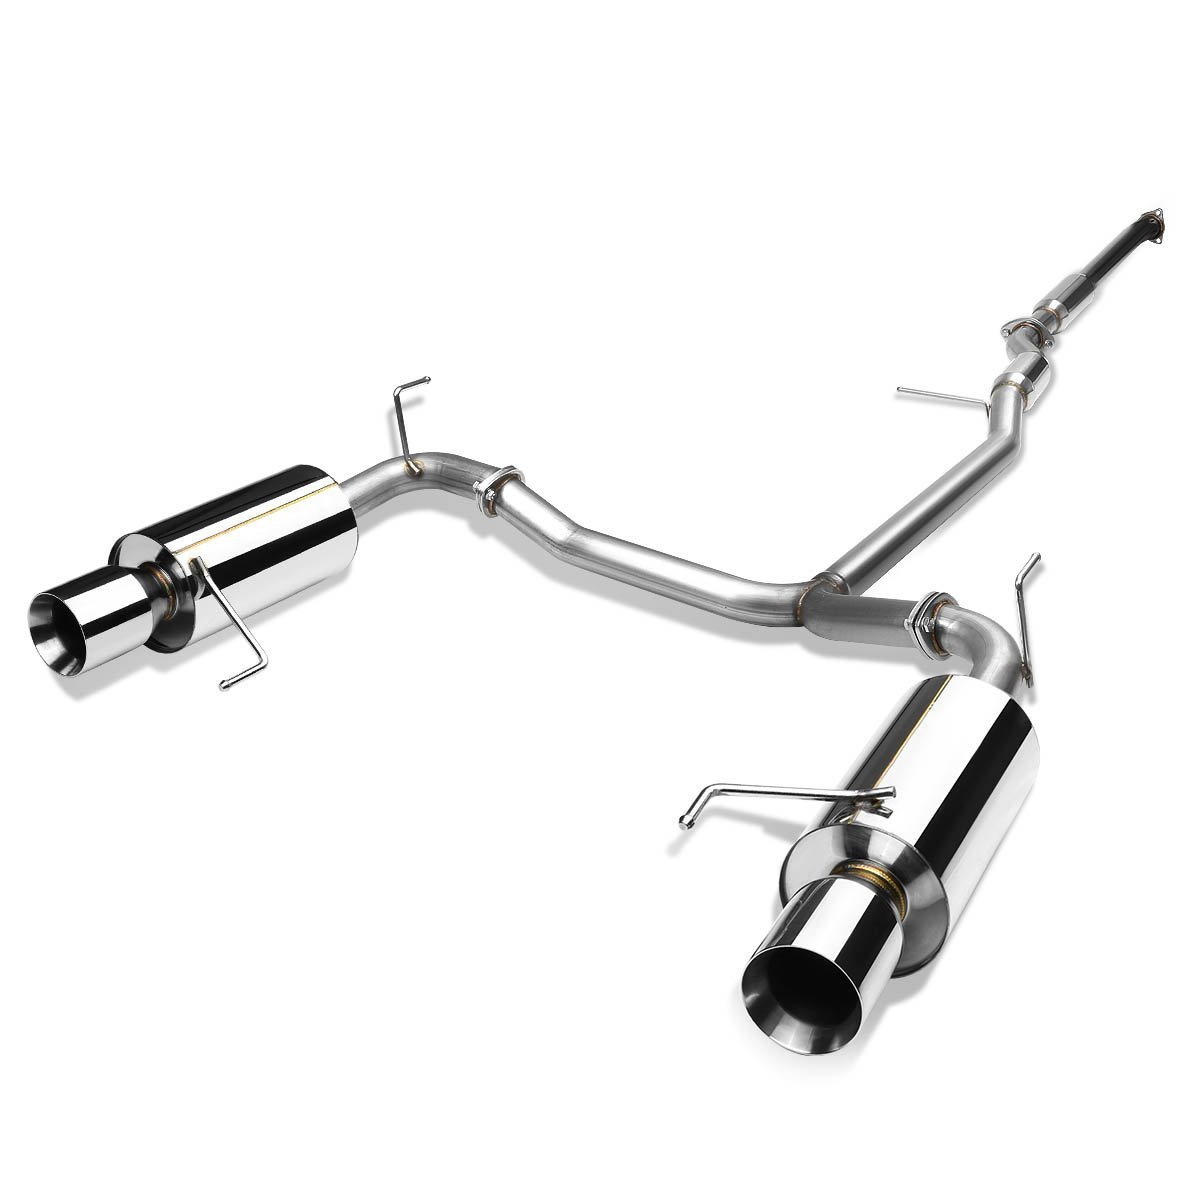 98 02 Honda Accord V6 Dual Exit S S Catback Exhaust Rolled Tip